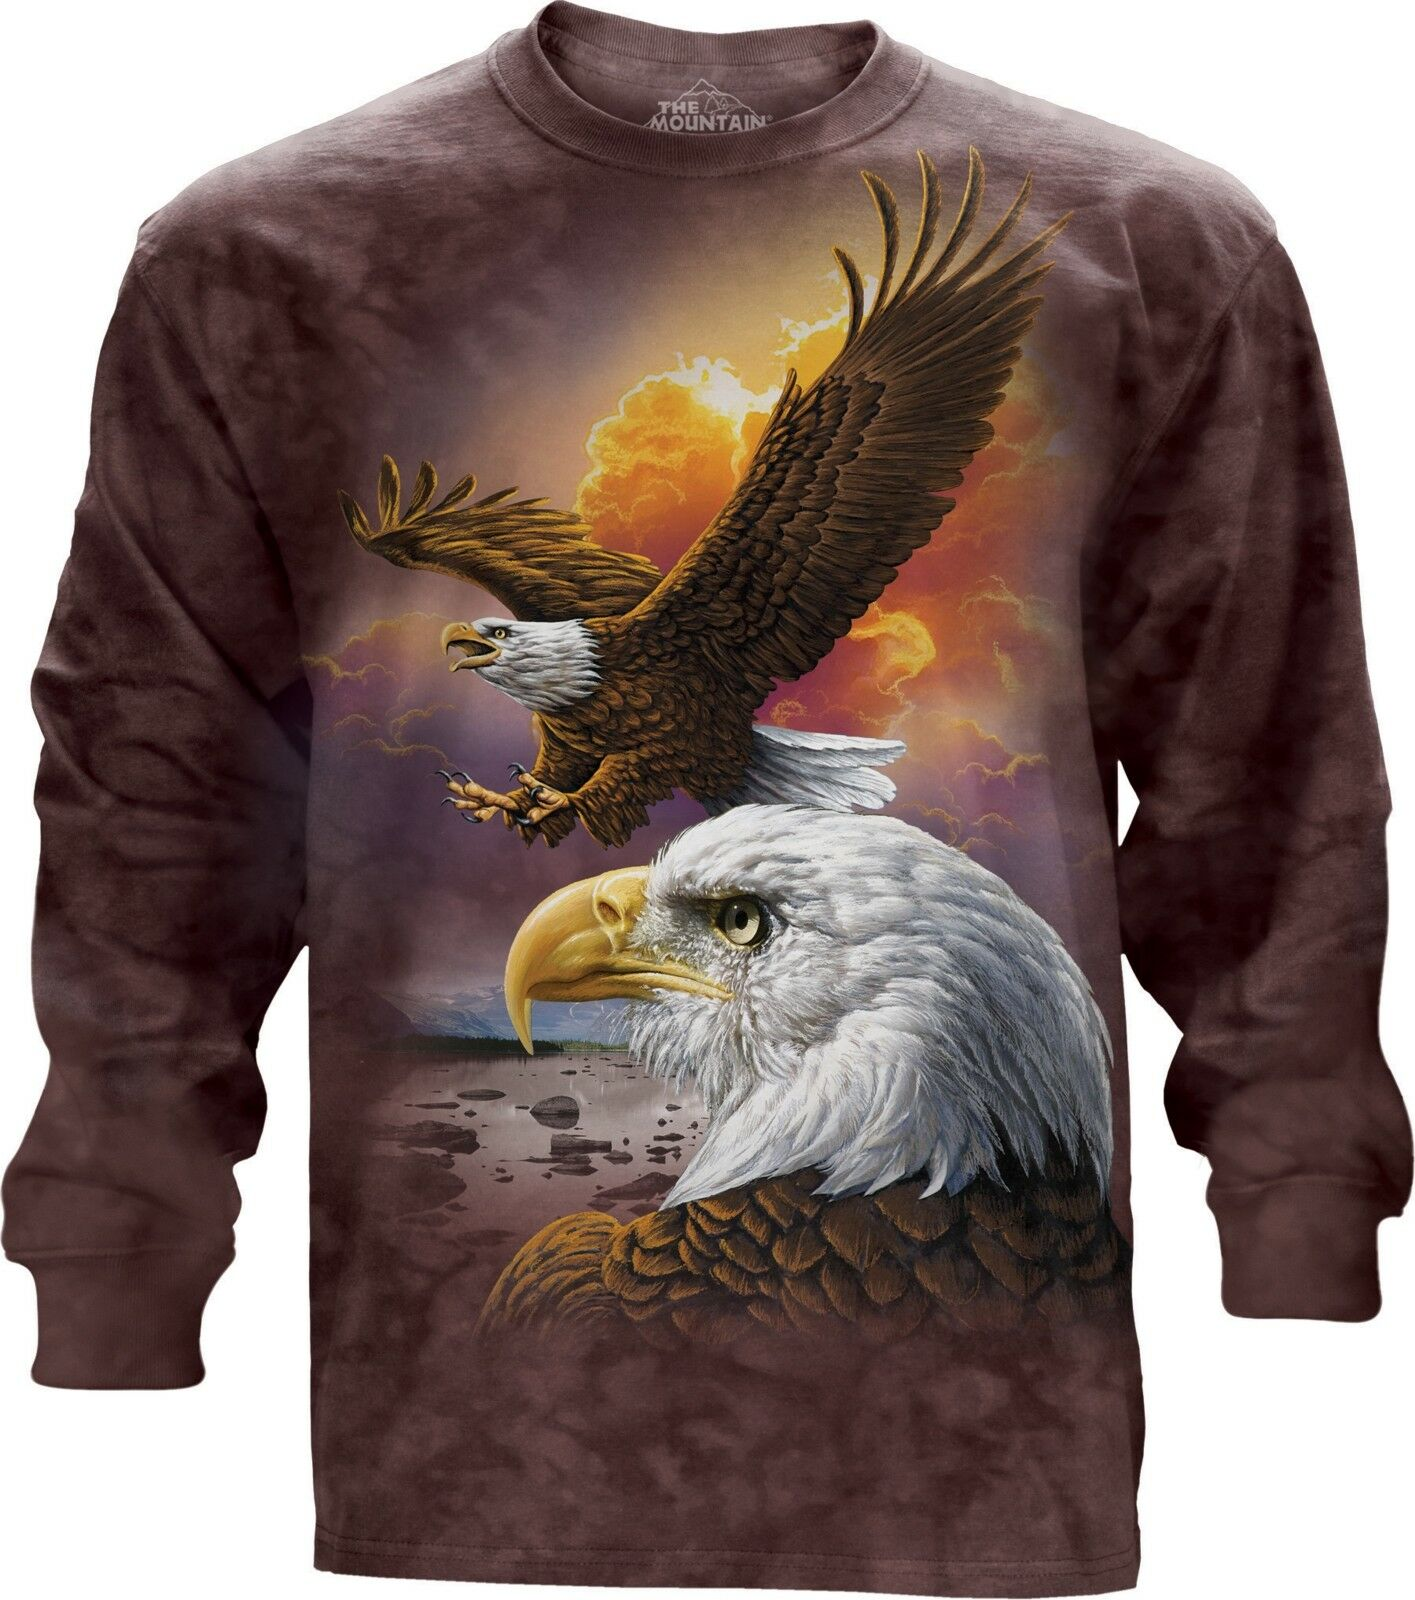 Eagle & Clouds Adult Unisex Longsleeve Top The Mountain